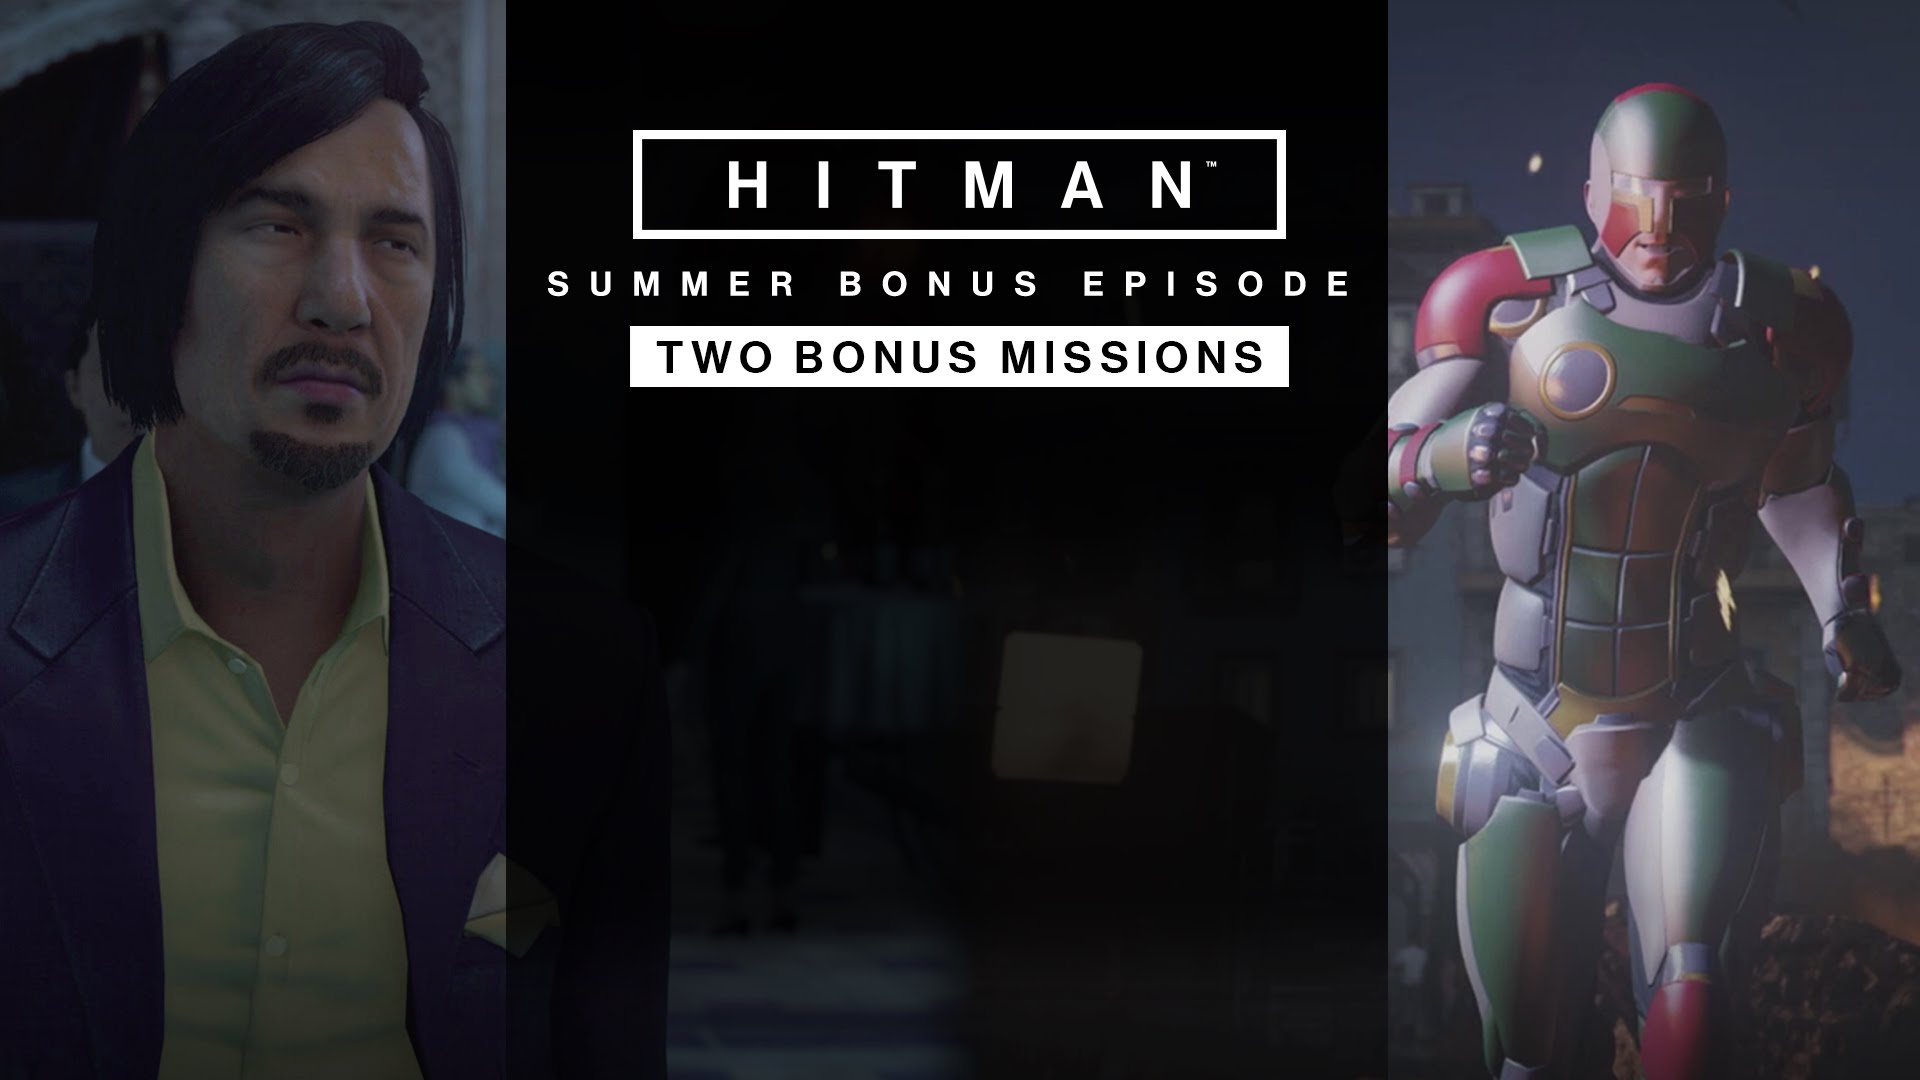 HITMAN: Summer Bonus Episode - Launch Trailer